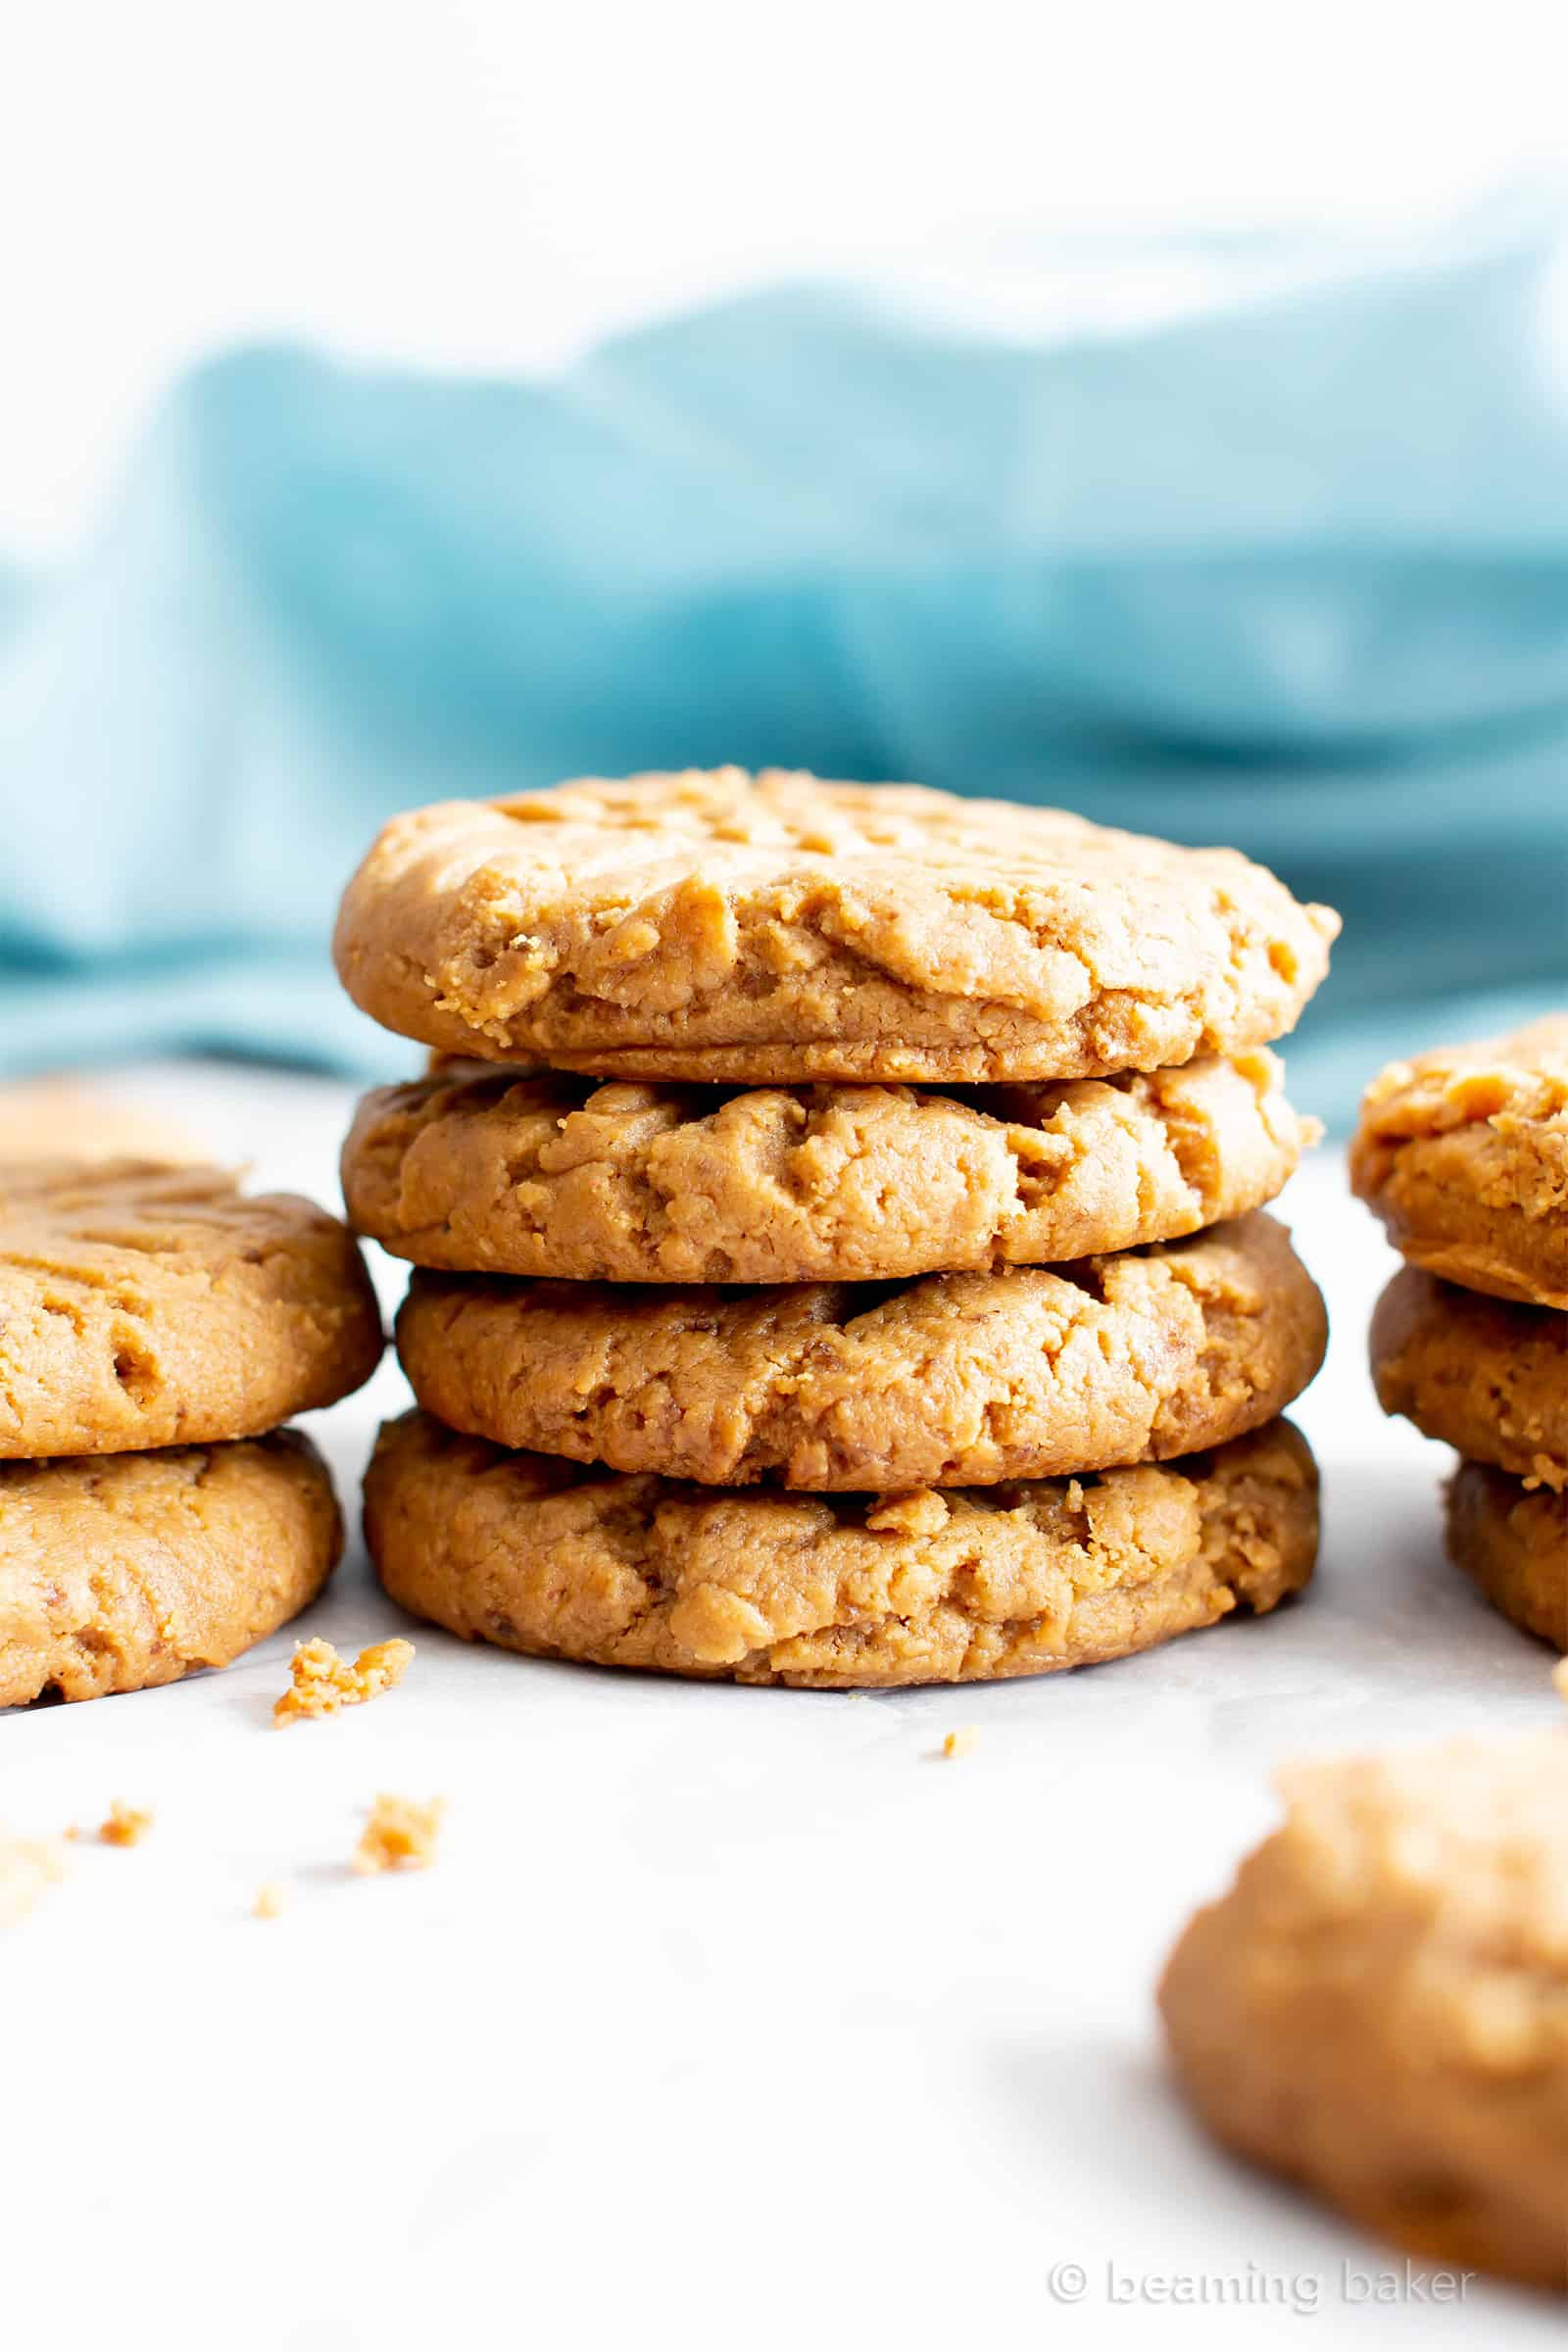 4 Ingredient Gluten Free Soft Peanut Butter Cookies (V, GF): an easy recipe for deliciously super-soft, flourless peanut butter cookies made with just a few healthy ingredients. #PeanutButter #Vegan #GlutenFree #GlutenFreeVegan #VeganBaking #GlutenFreeCookies | Recipe at BeamingBaker.com